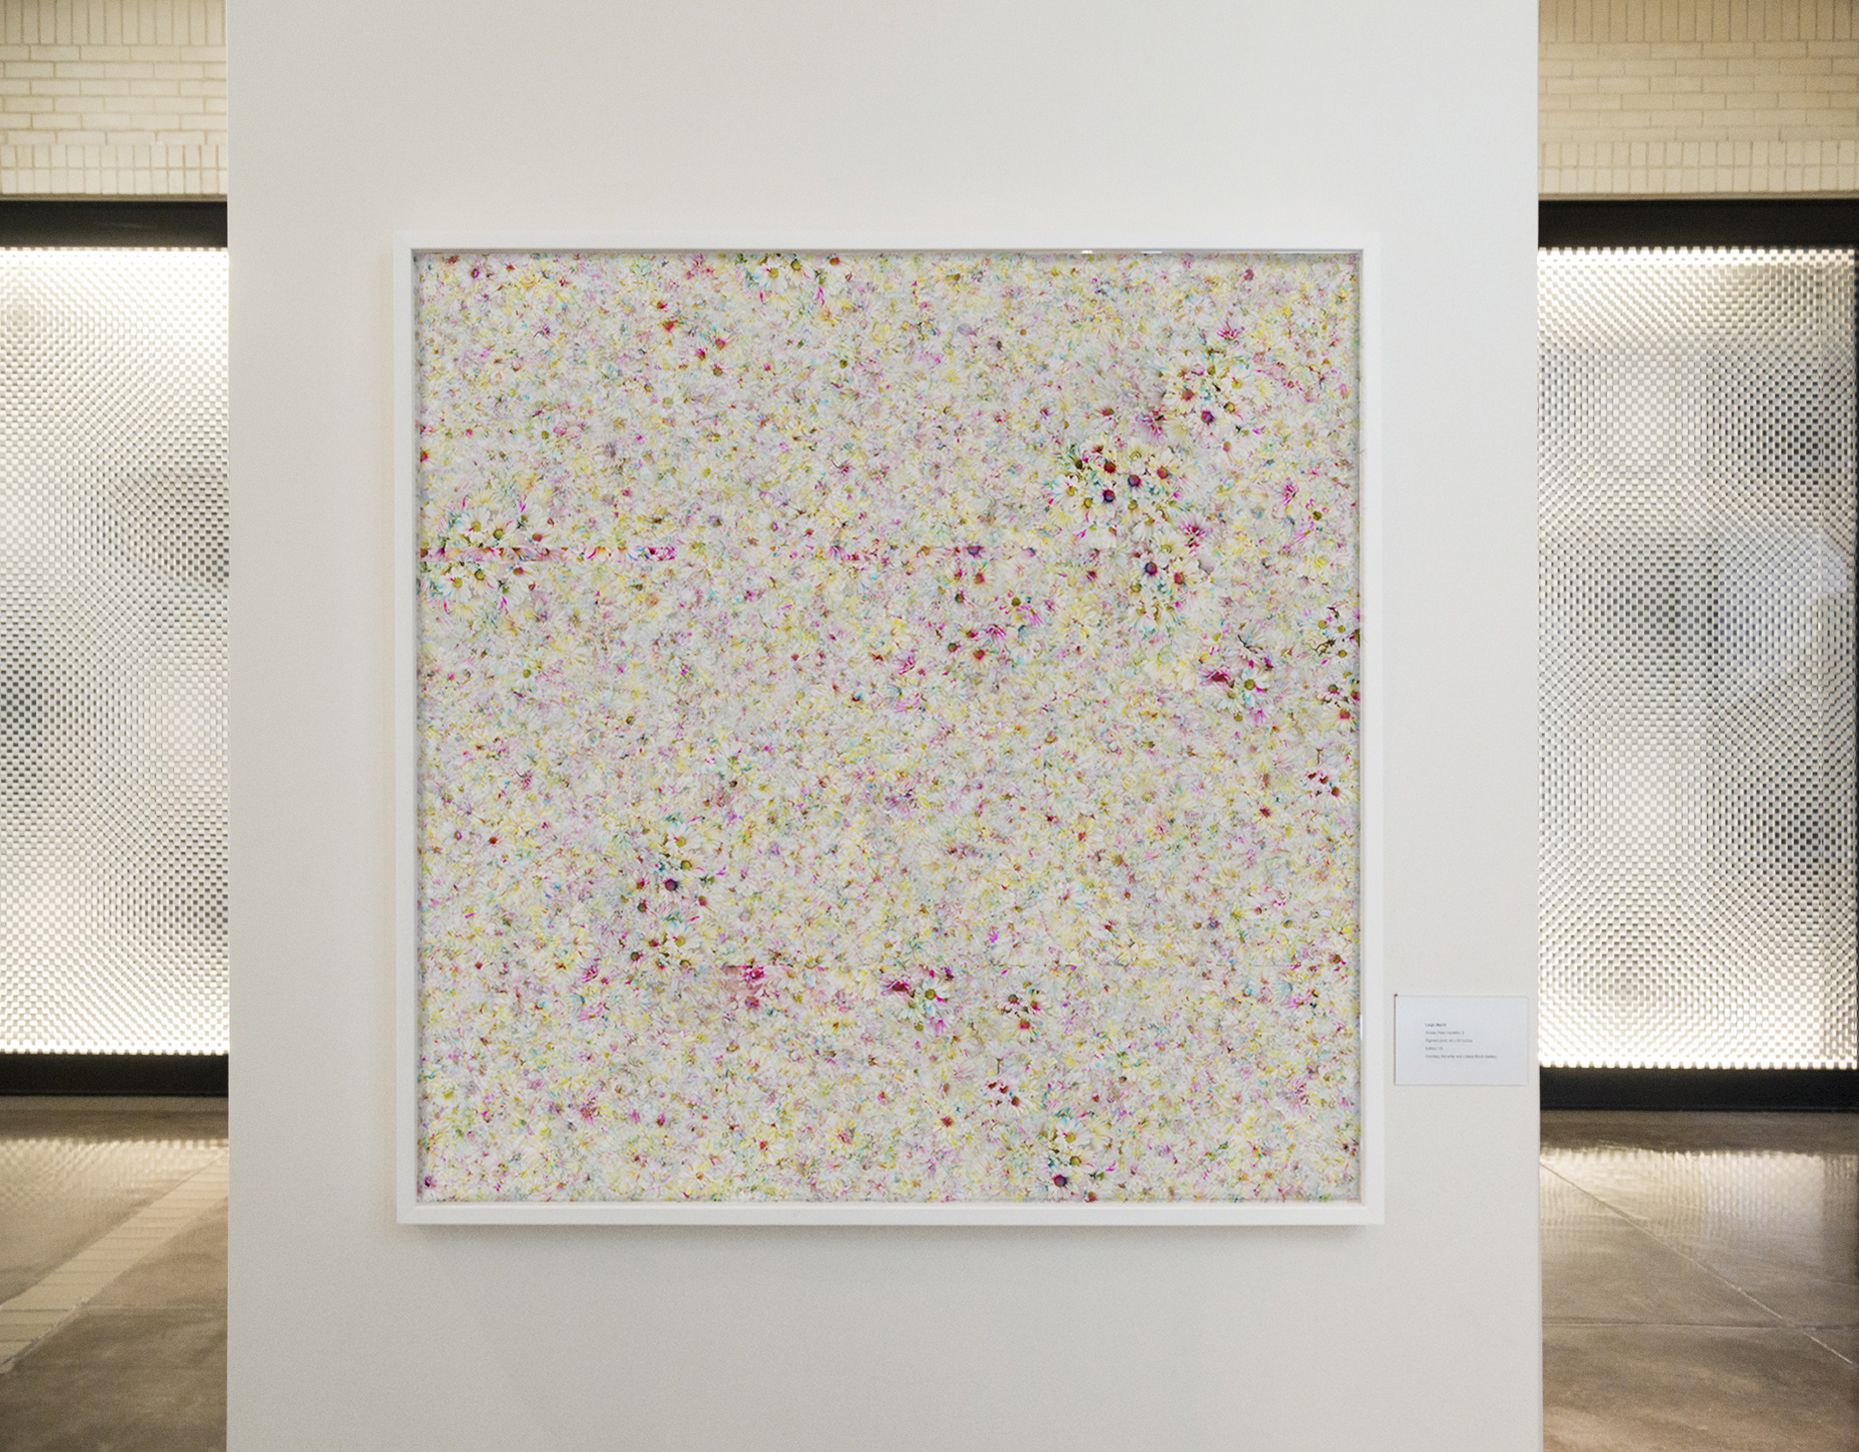 Installation view,  Flower Field Variation 3  in  Flower Power  exhibition at NorthPark, Dallas, TX, 2017